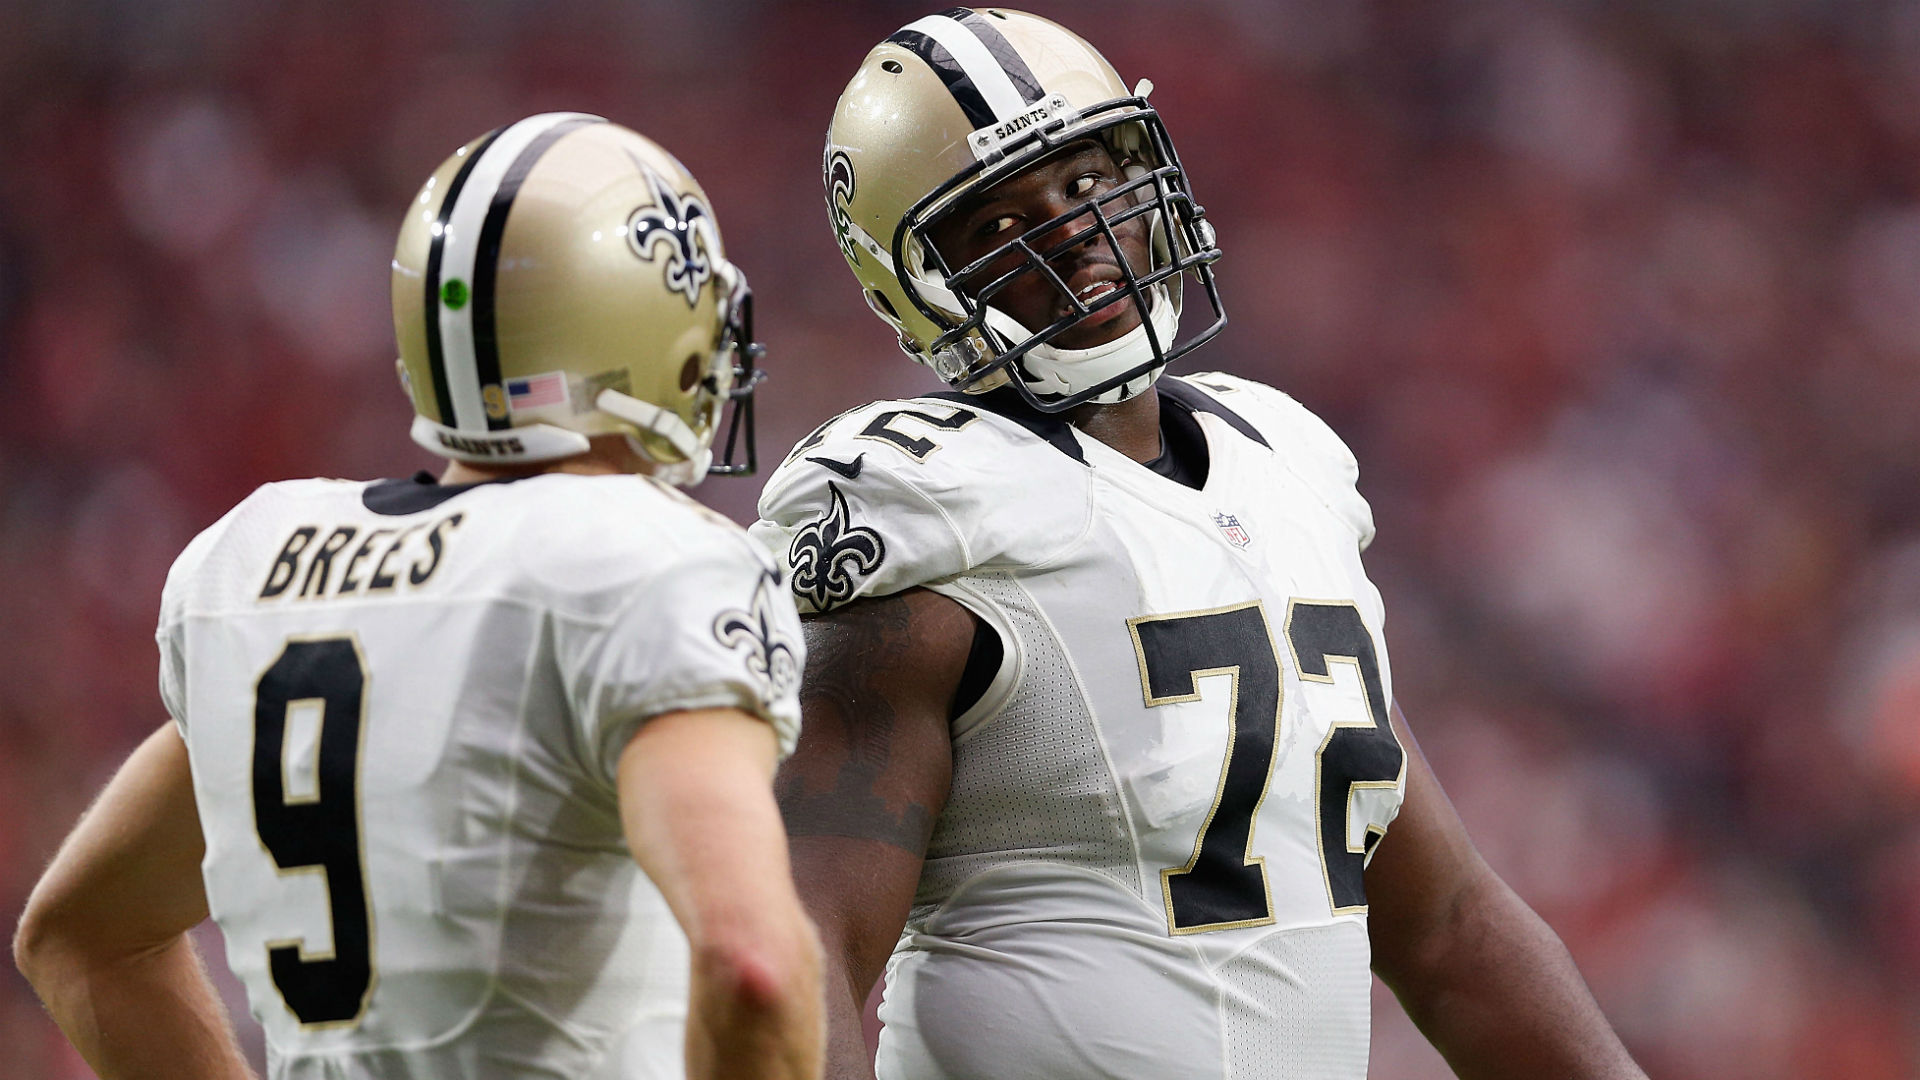 Saints offense always overcomes, but losing Terron Armstead is big